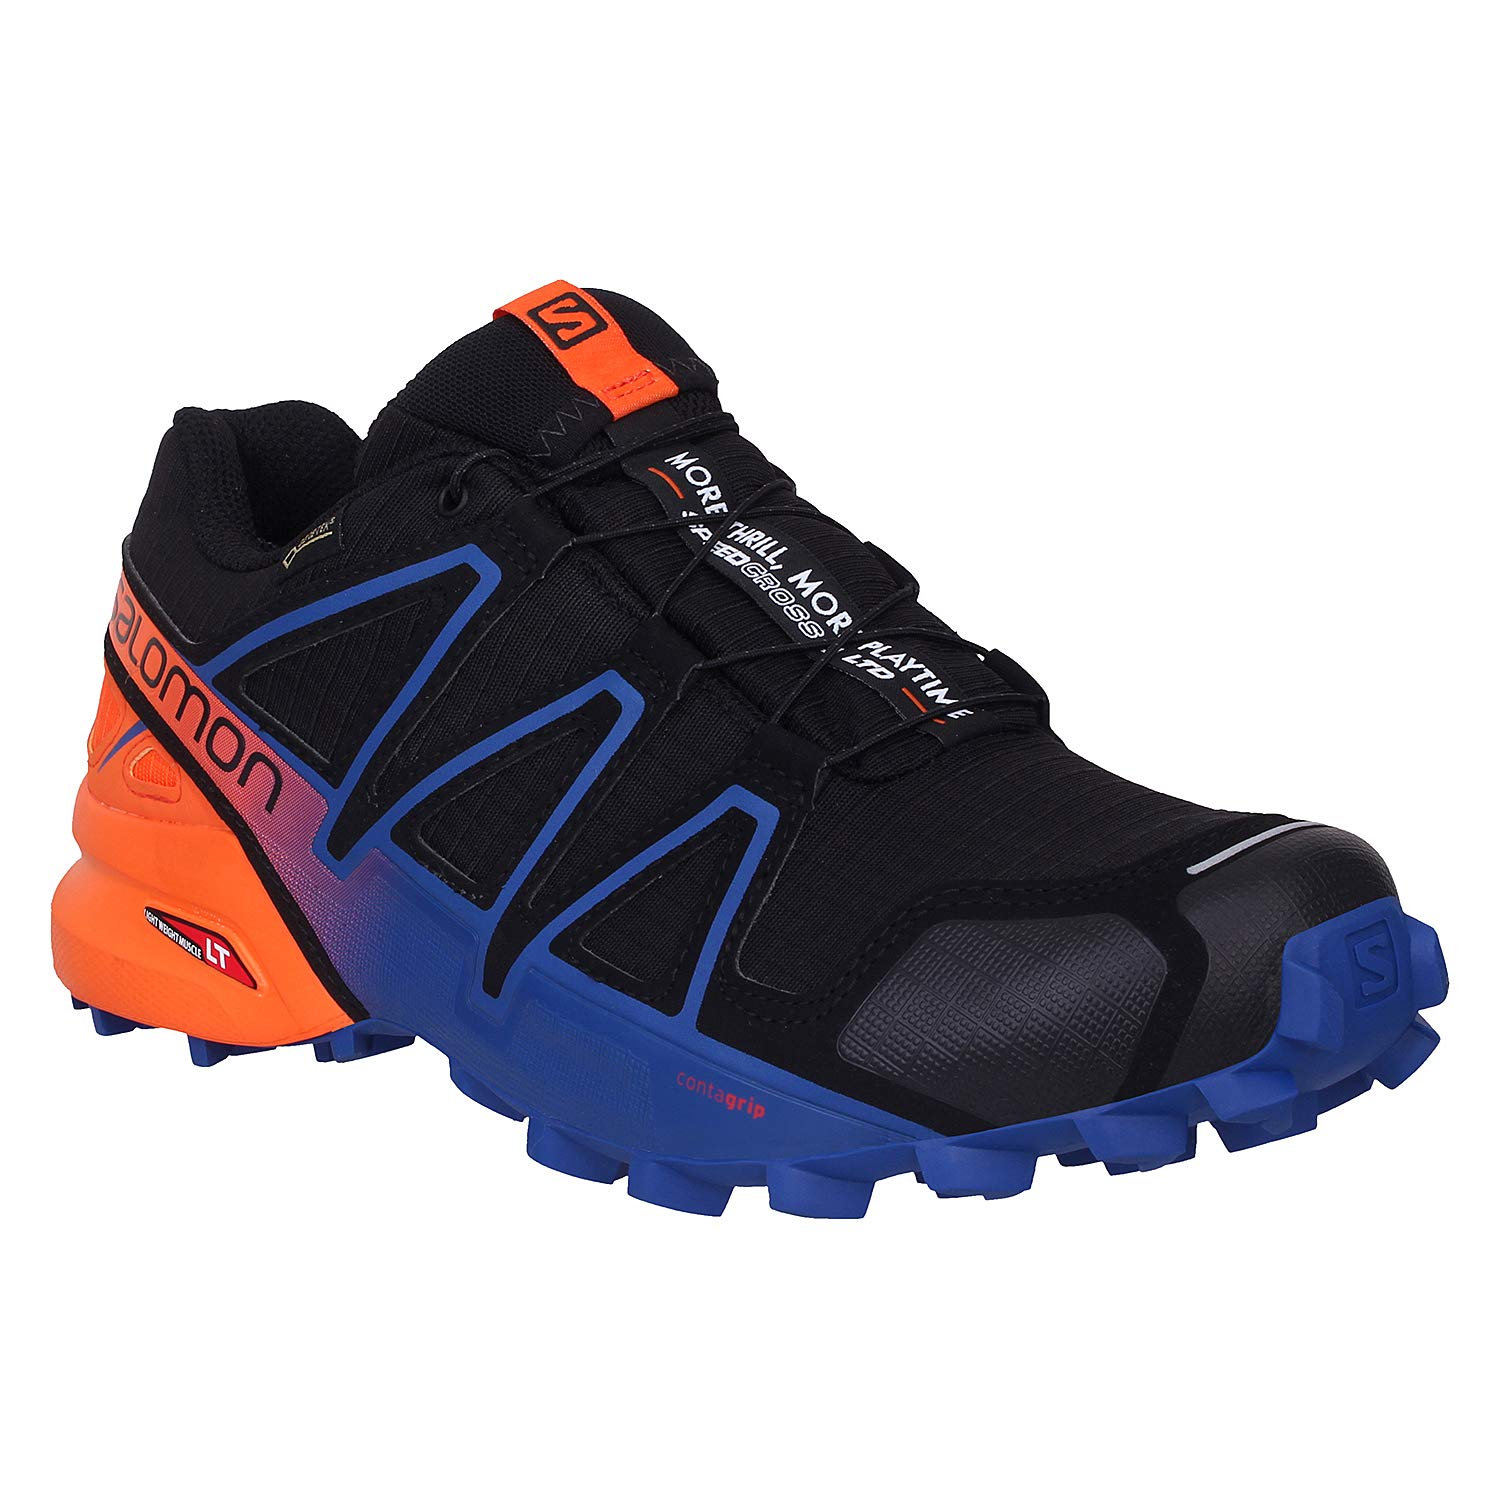 Jugar con Pantalones altavoz  Salomon Black L40177400 Speedcross 4 Limited Edition Men's Trail Running  Shoes - 7 UK: Amazon.in: Sports, Fitness & Outdoors